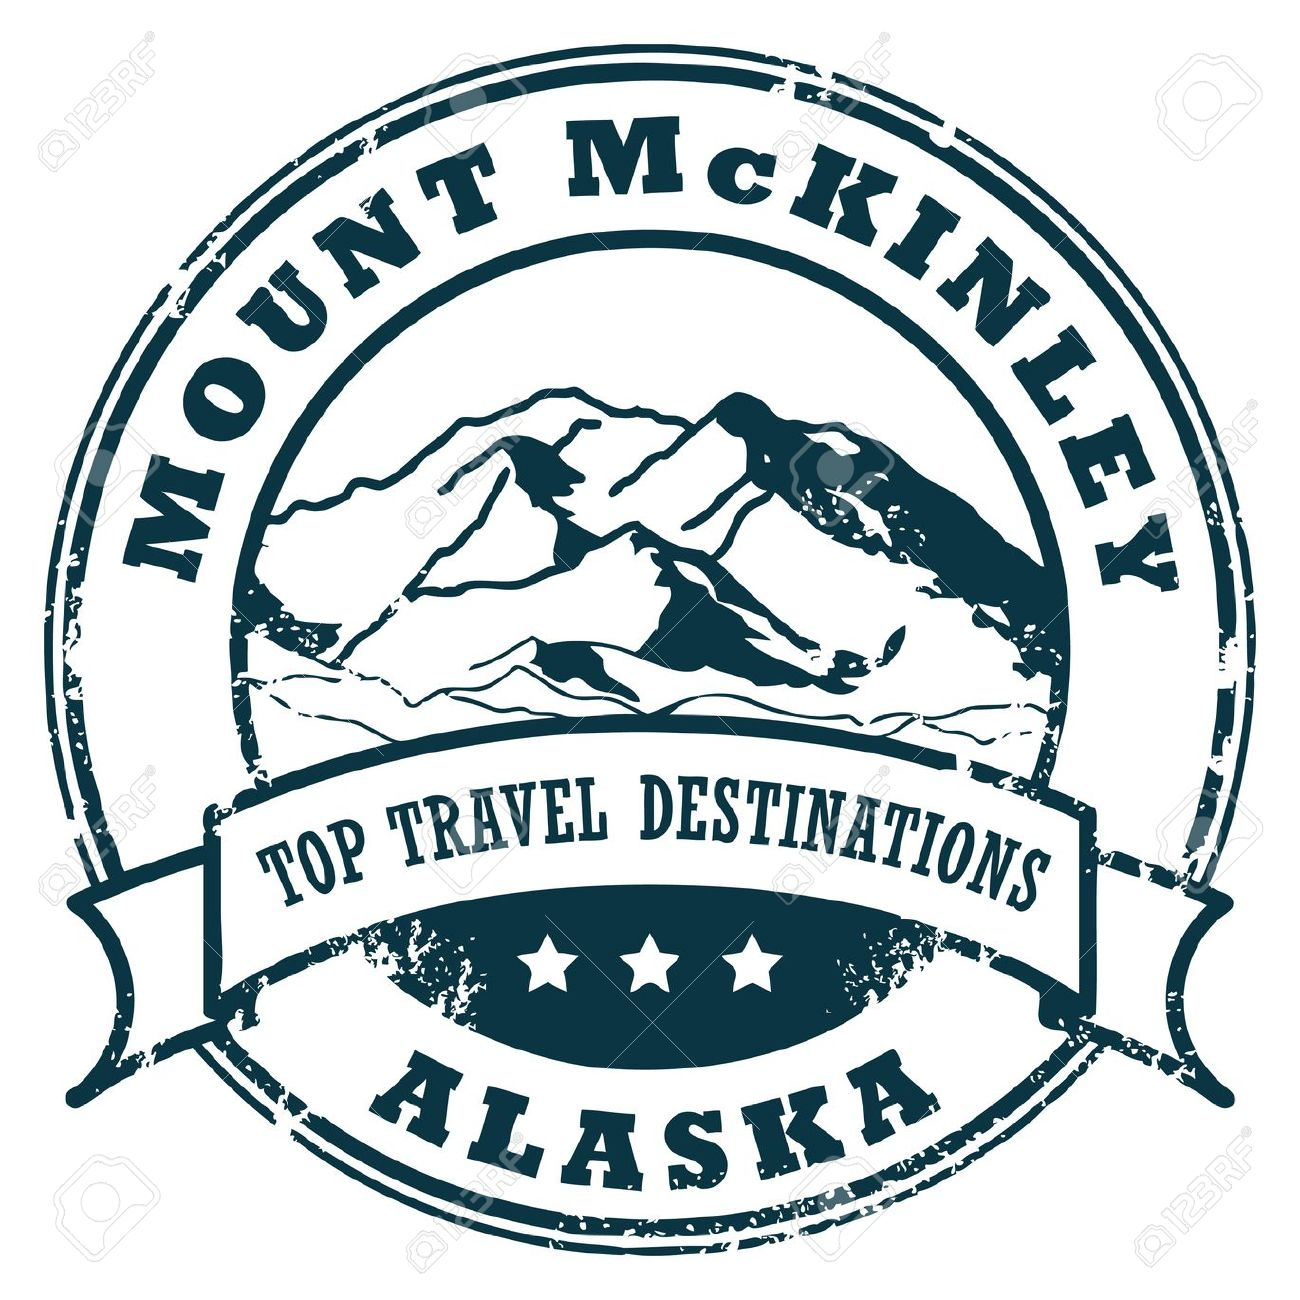 Mount McKinley clipart #19, Download drawings